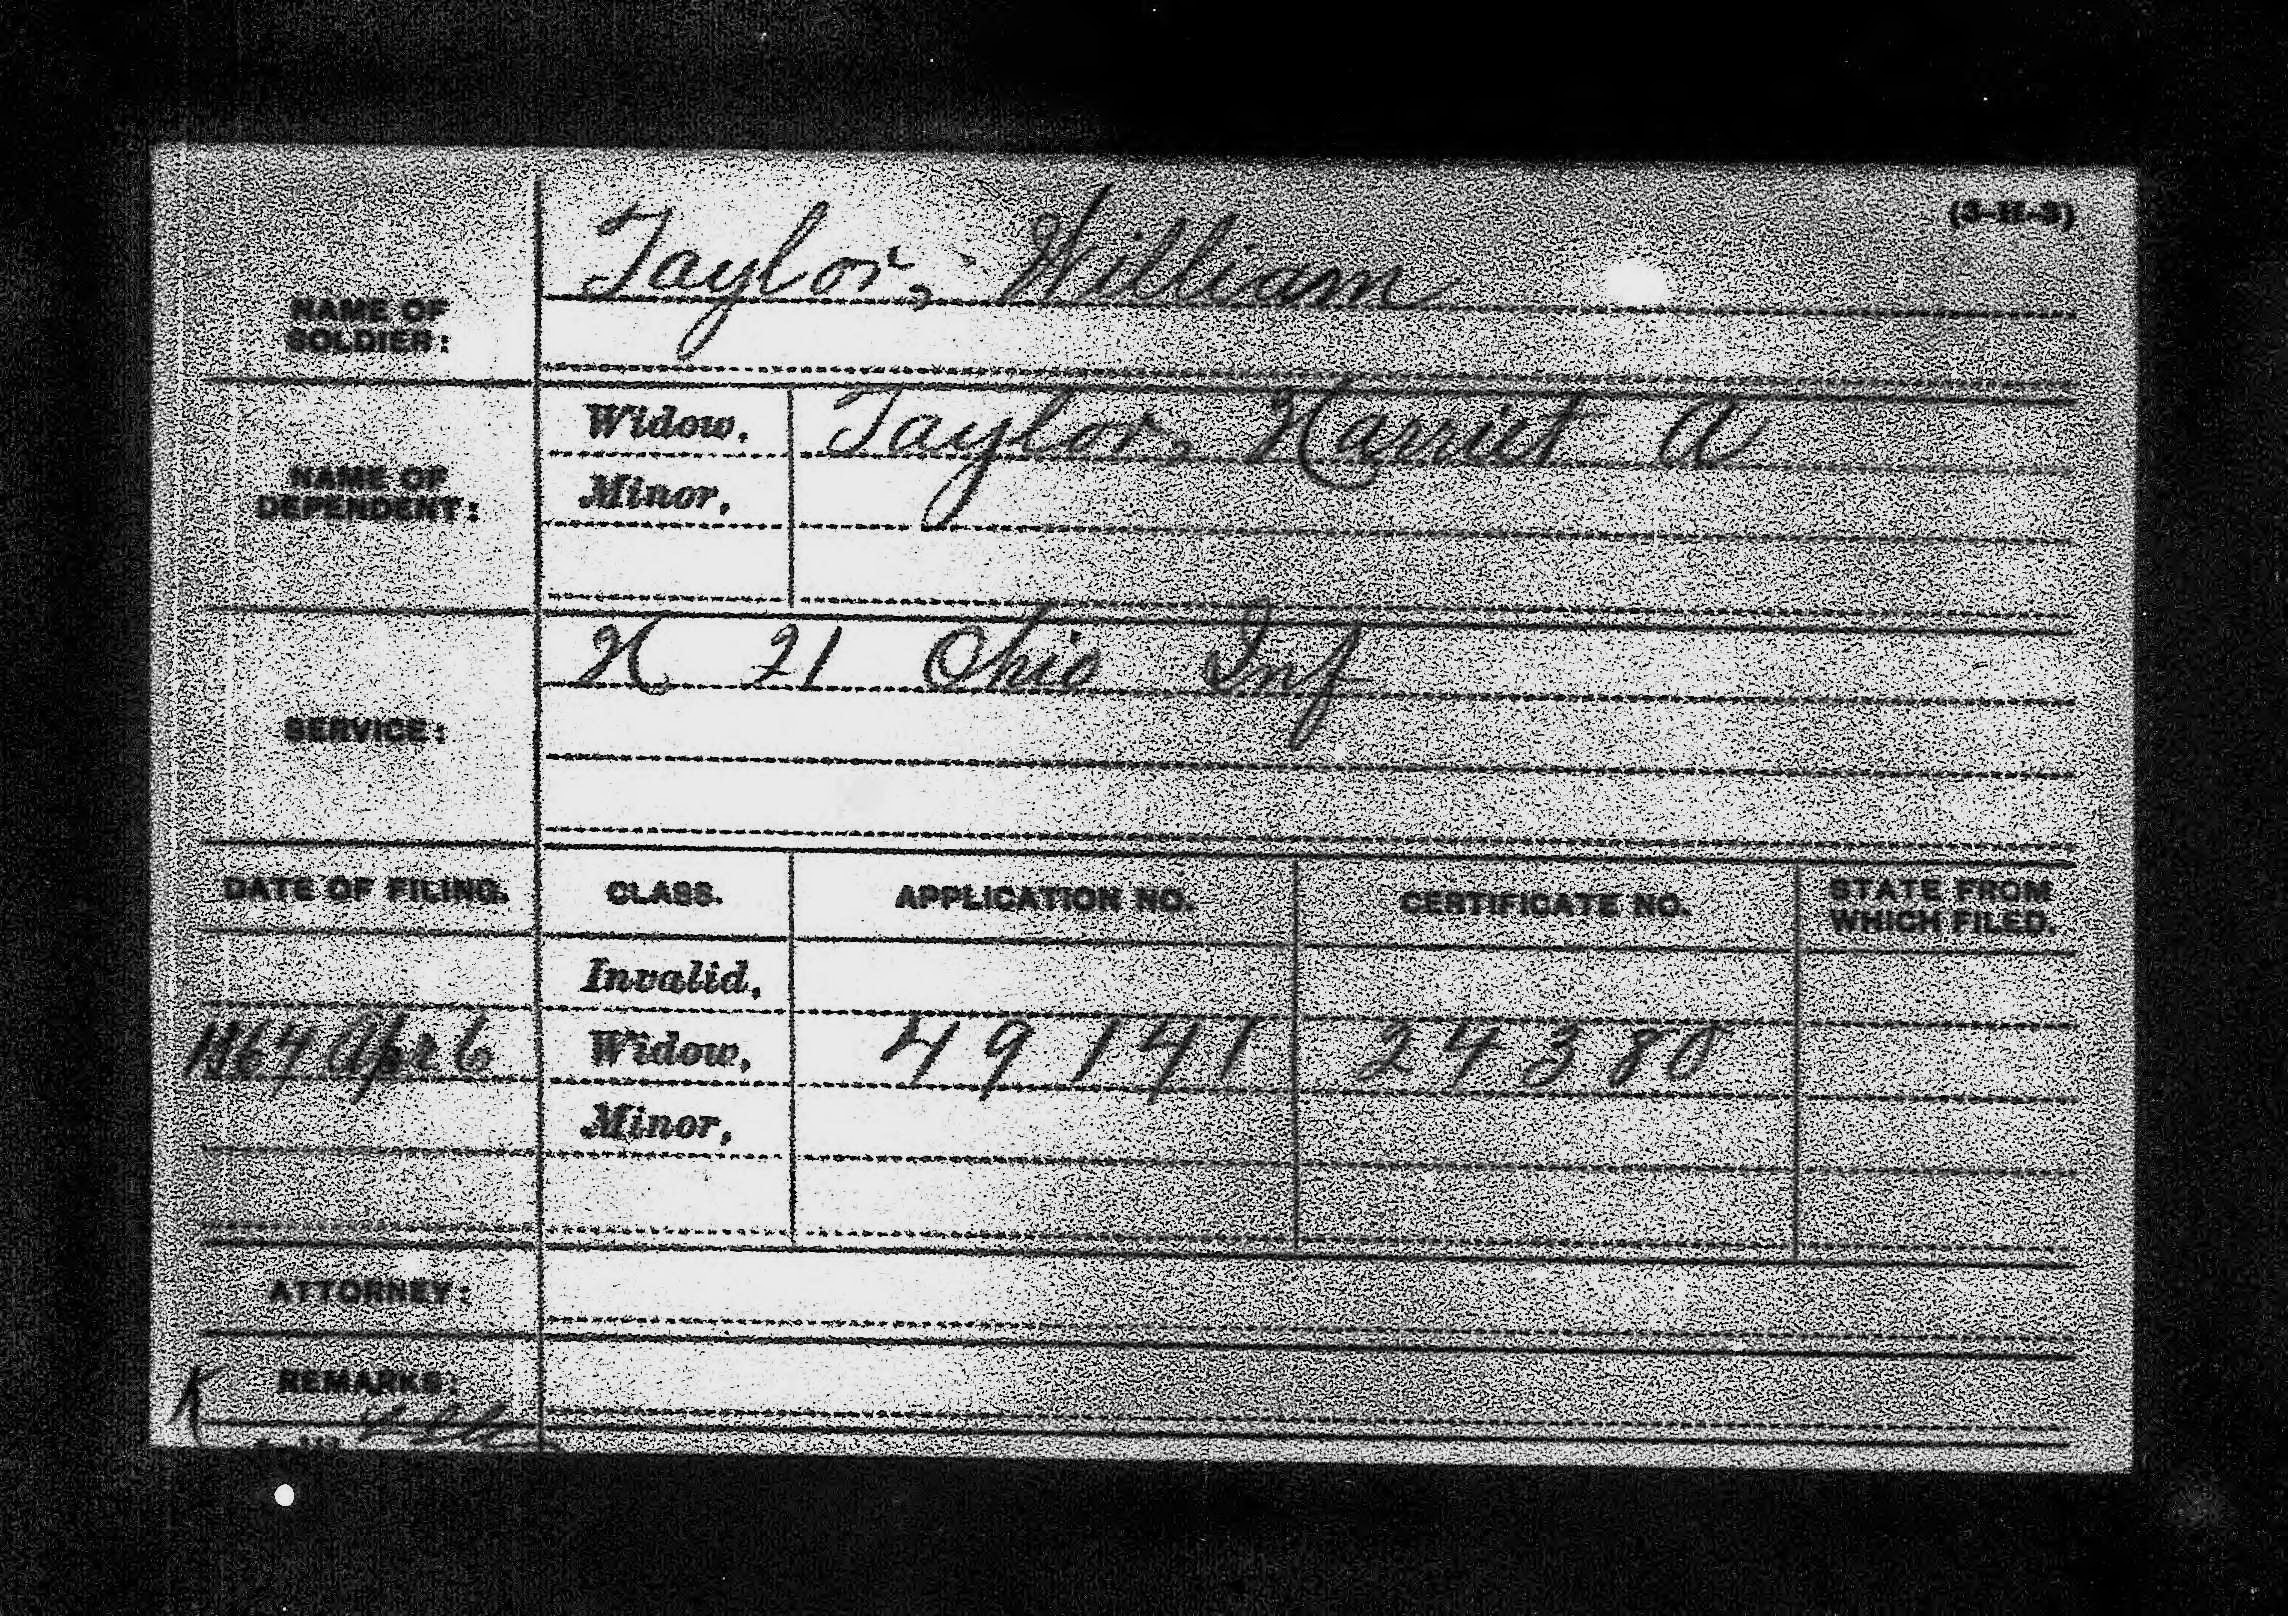 William A Taylor